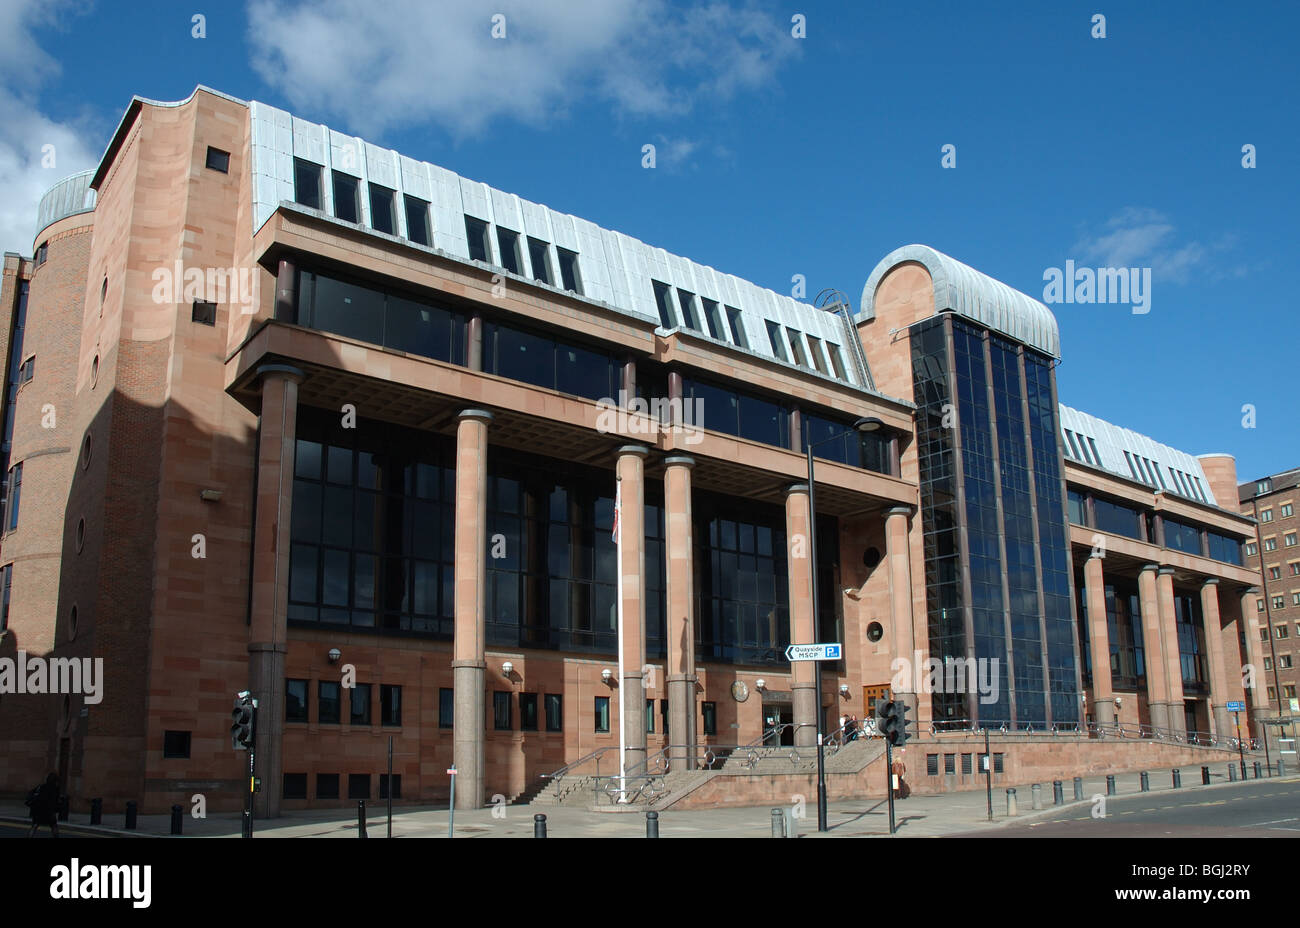 The Law Courts, The Quayside, Newcastle-upon-Tyne, Tyne and Wear, England, UK - Stock Image